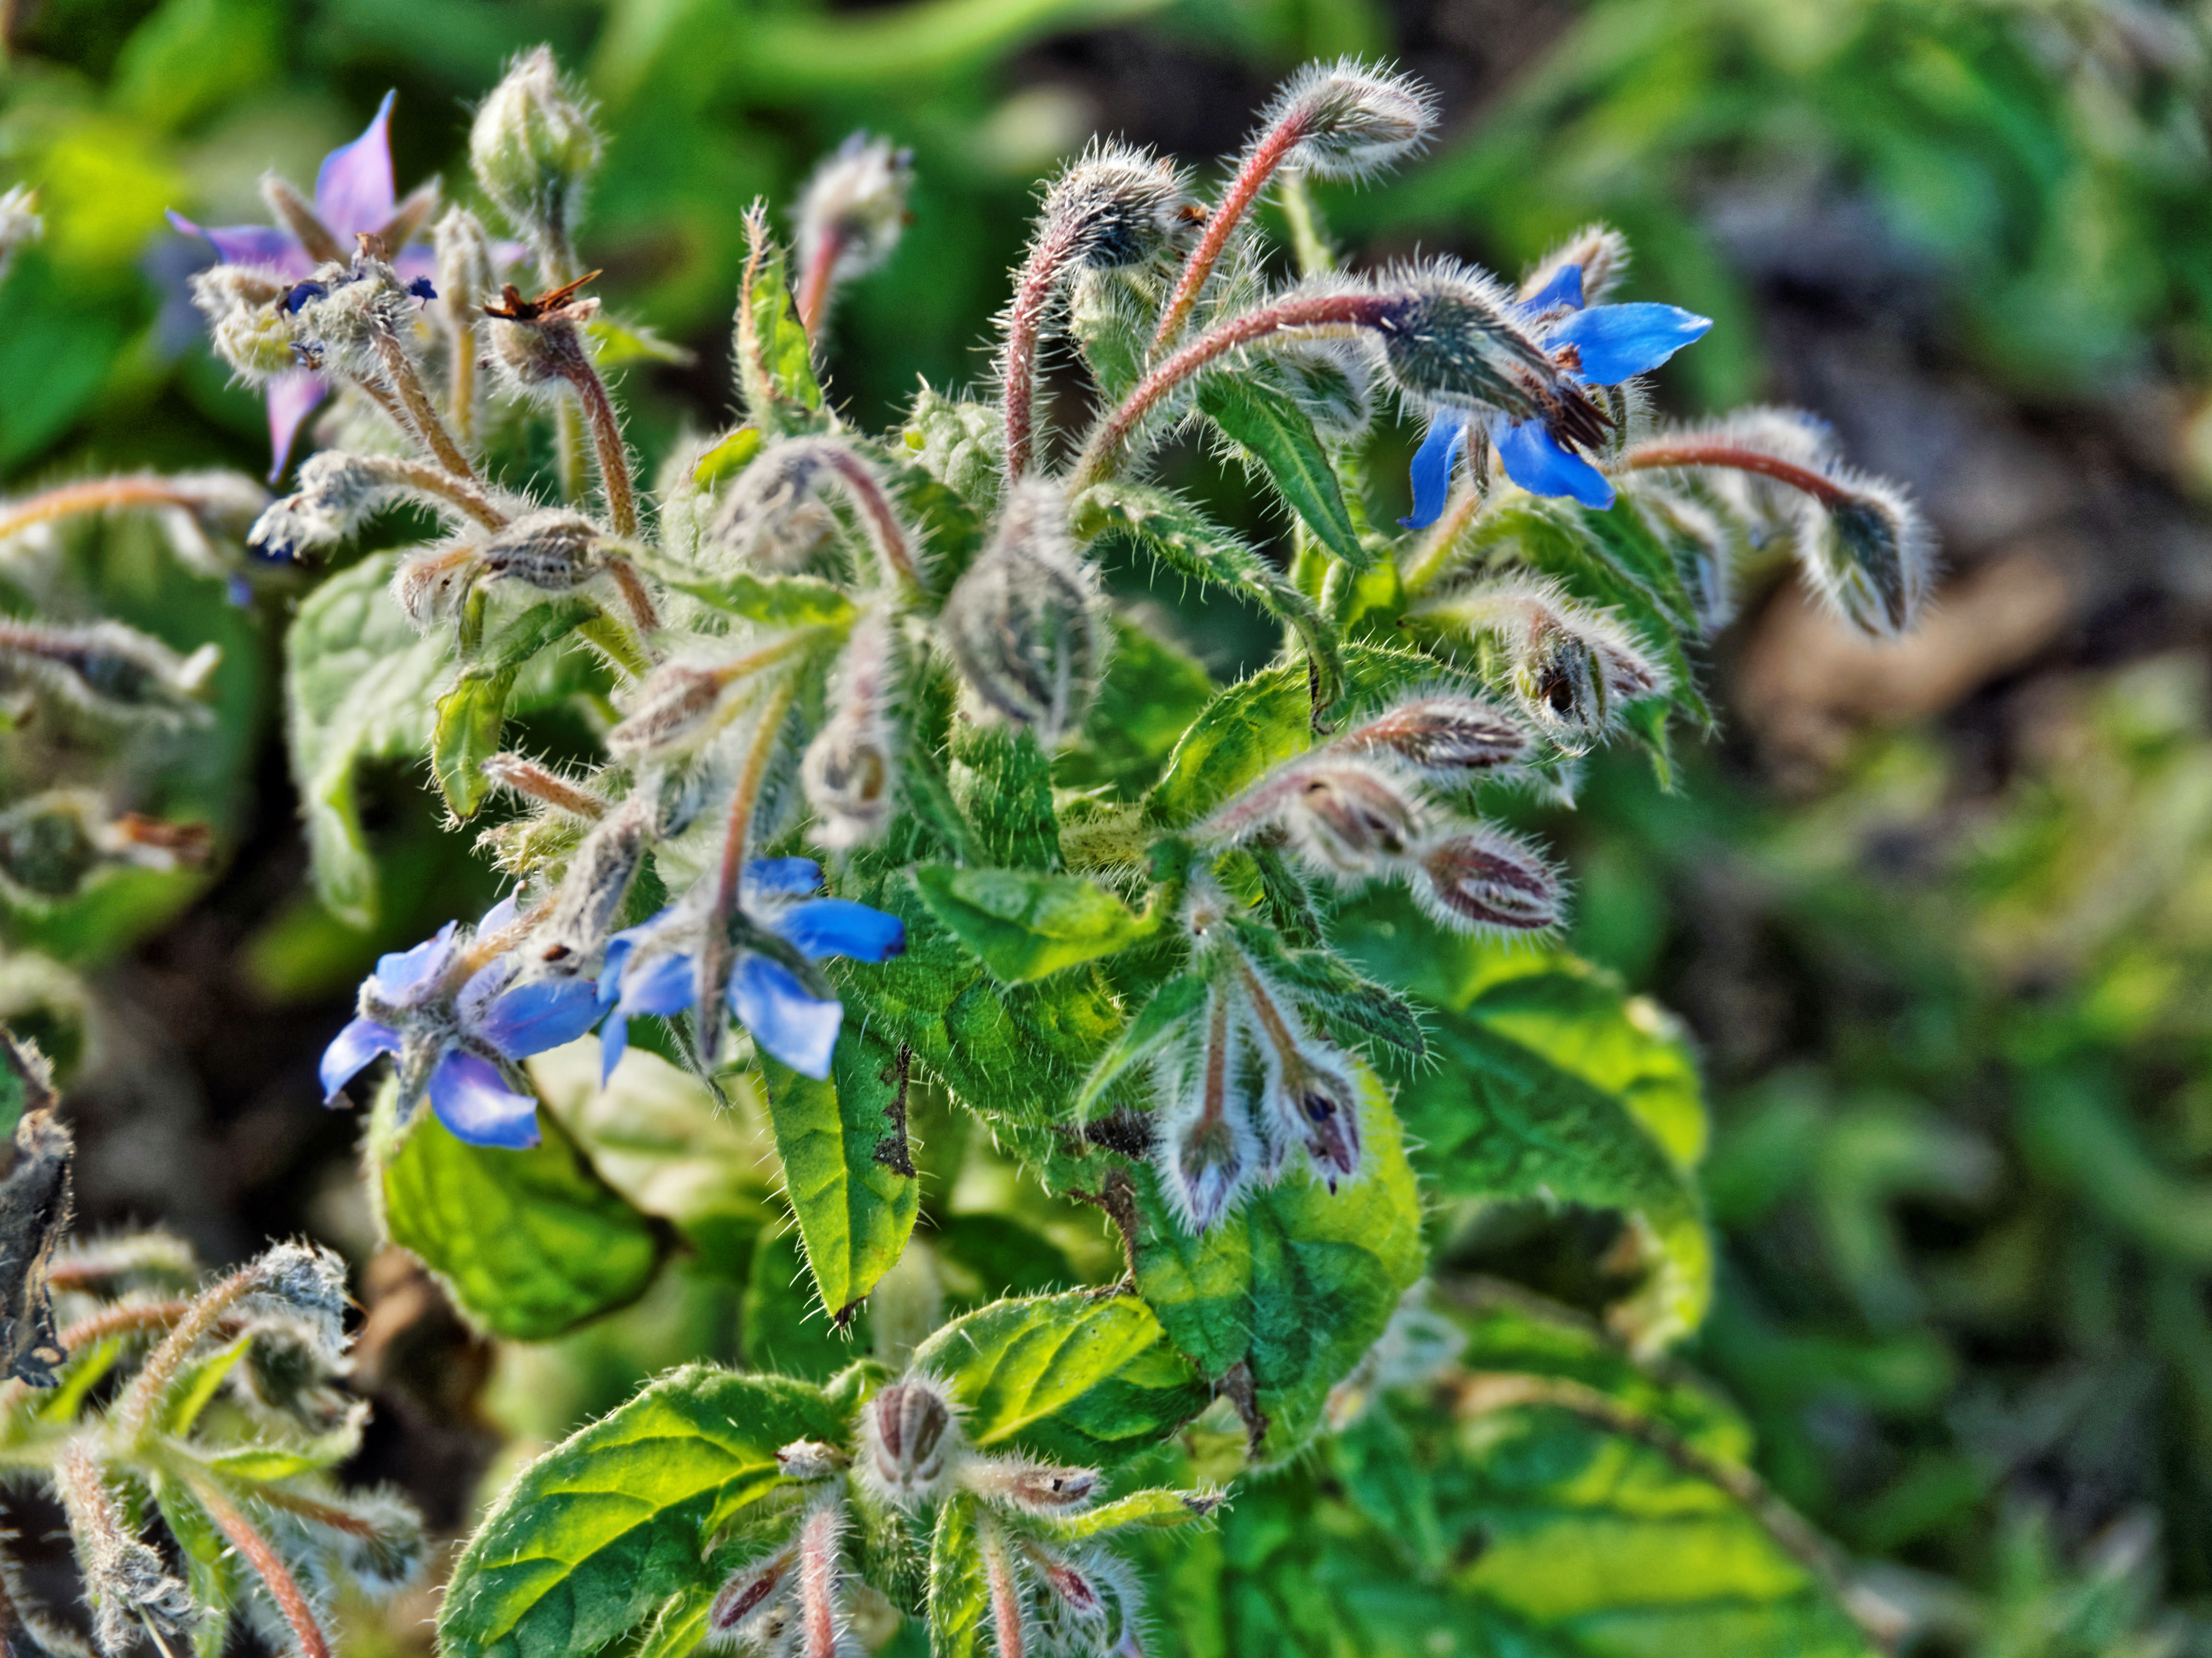 This should be Borage.jpeg.  Is it missing?